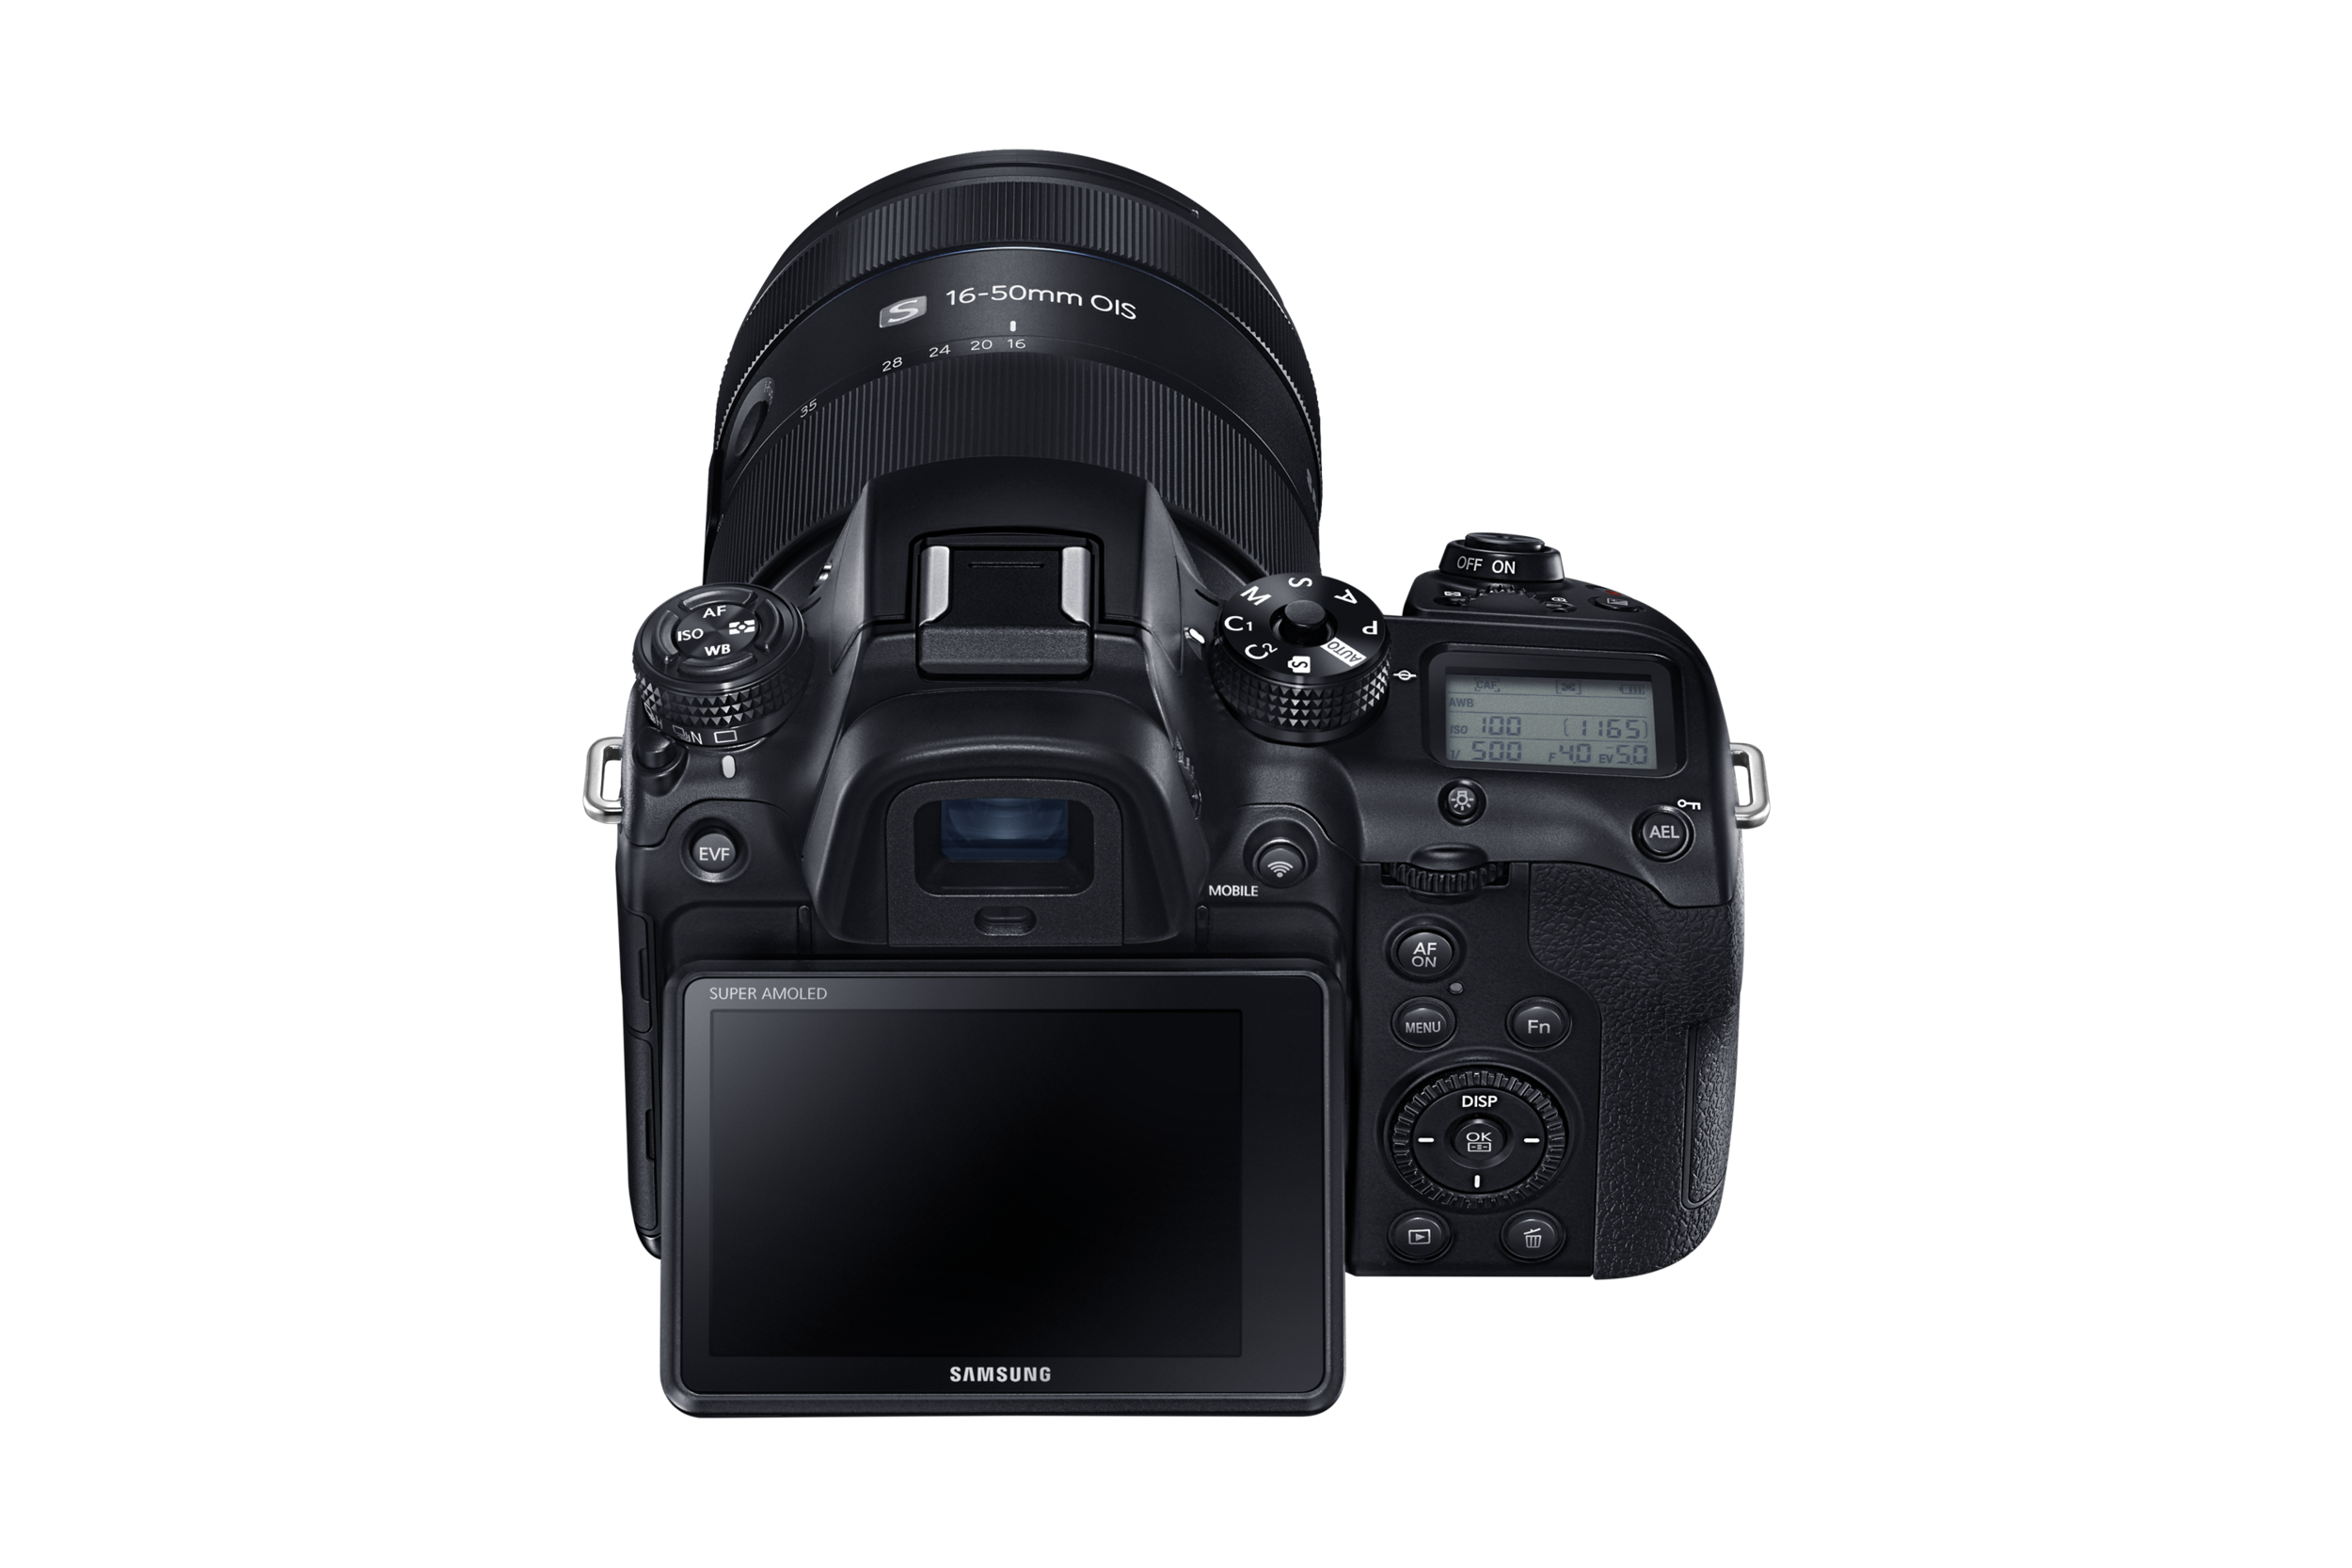 """28.2 megapixel APS-C BSI-CMOS sensor  Hybrid AF system with 205 phase-detect points covering 90% of the frame  15 fps burst shooting with continuous autofocus  4K (DCI 4K & UHD) video recording using H.265 codec  Can output 4:2:0 8-bit 4K video over HDMI  Stripe pattern AF illuminator with 15m range  Weather-resistant magnesium alloy body  Context-sensitive adaptive noise reduction  3"""" tilting Super AMOLED touchscreen display  2.36M dot OLED EVF with 5ms lag  LCD info display on top of camera  Built-in 802.11ac Wi-Fi and Bluetooth  USB 3.0 interface  Optional battery grip"""